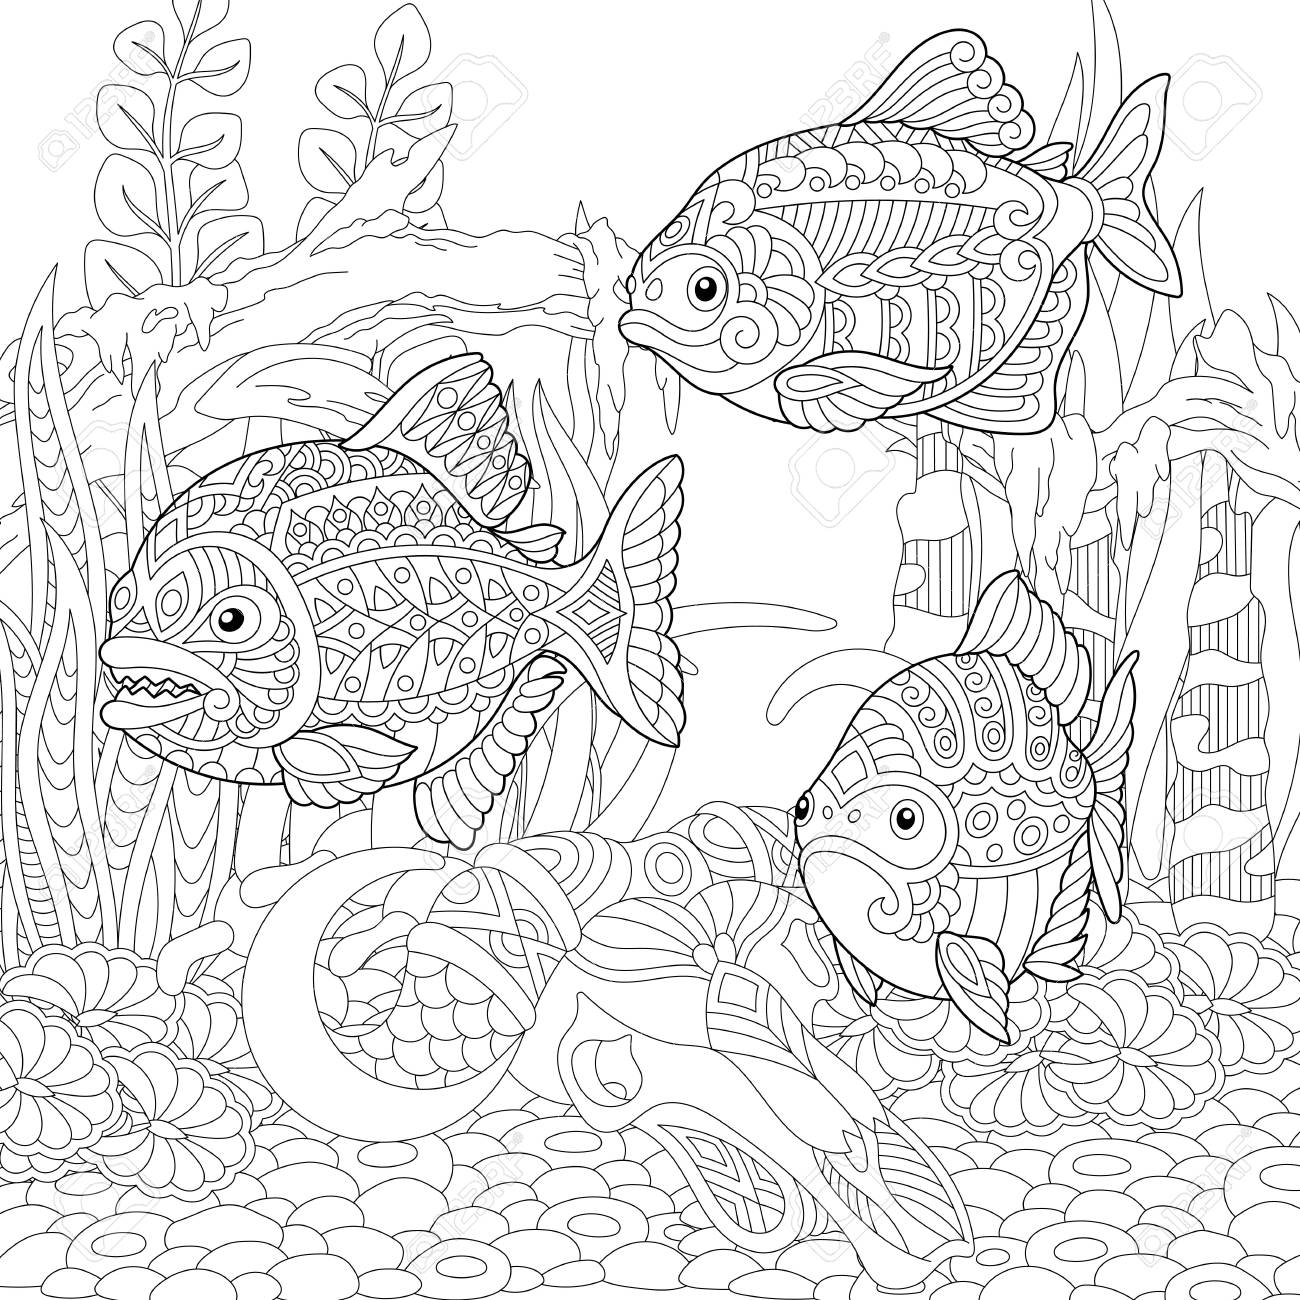 Piranhas South American Freshwater Predatory Fishes Coloring Royalty Free Cliparts Vectors And Stock Illustration Image 103013286